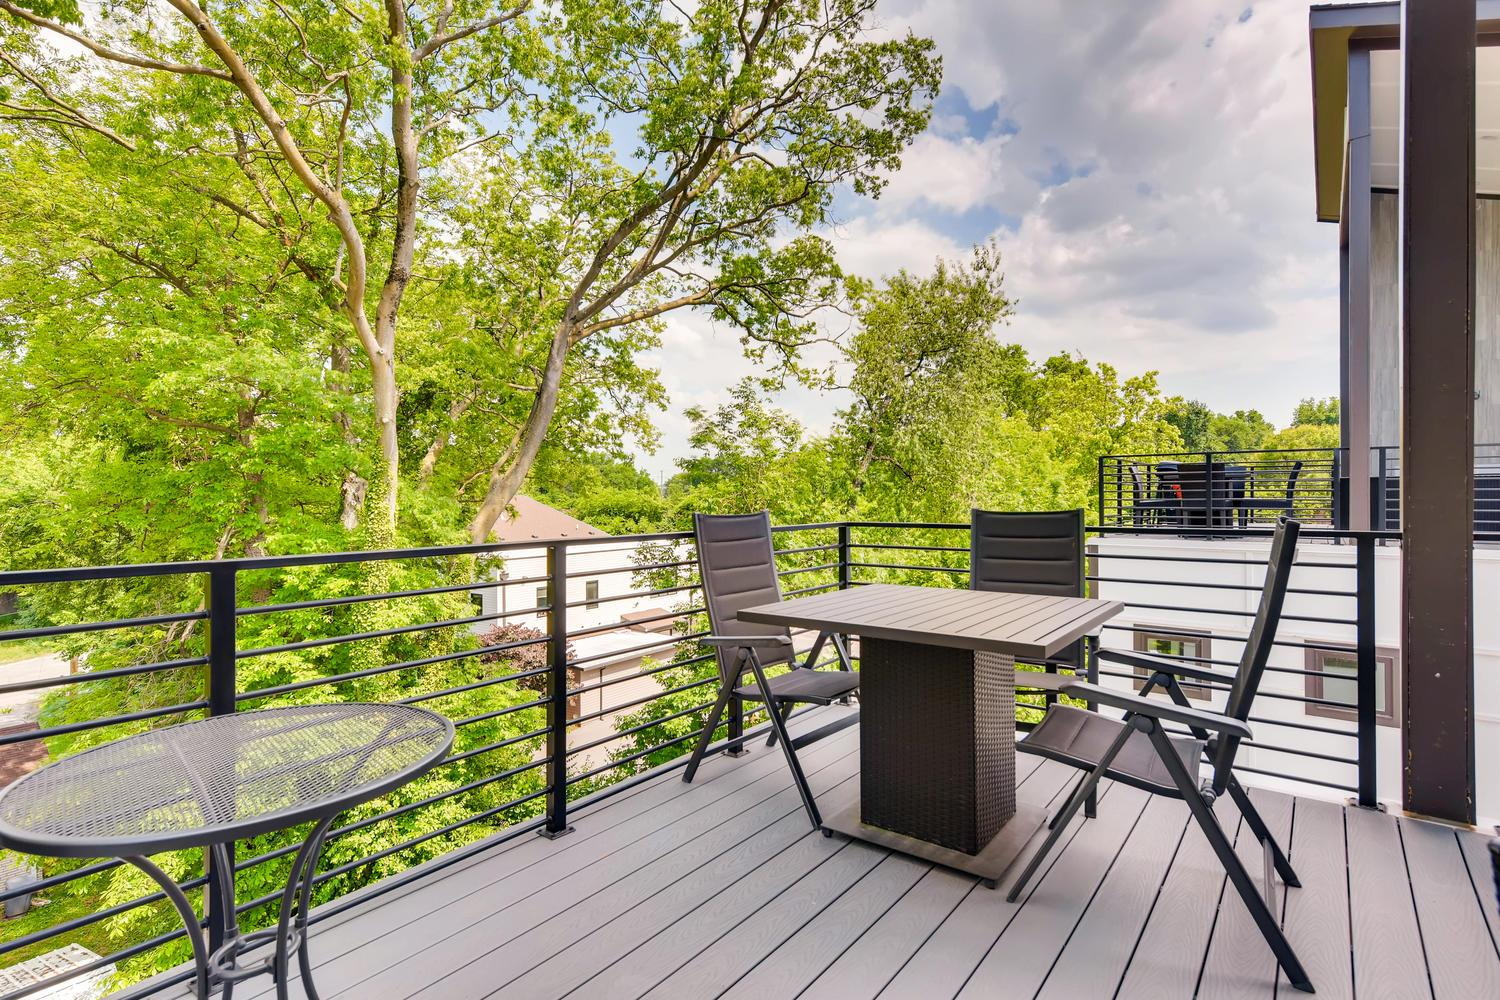 2706B Greystone Rd, Nashville, TN 37204 - Nashville, TN real estate listing